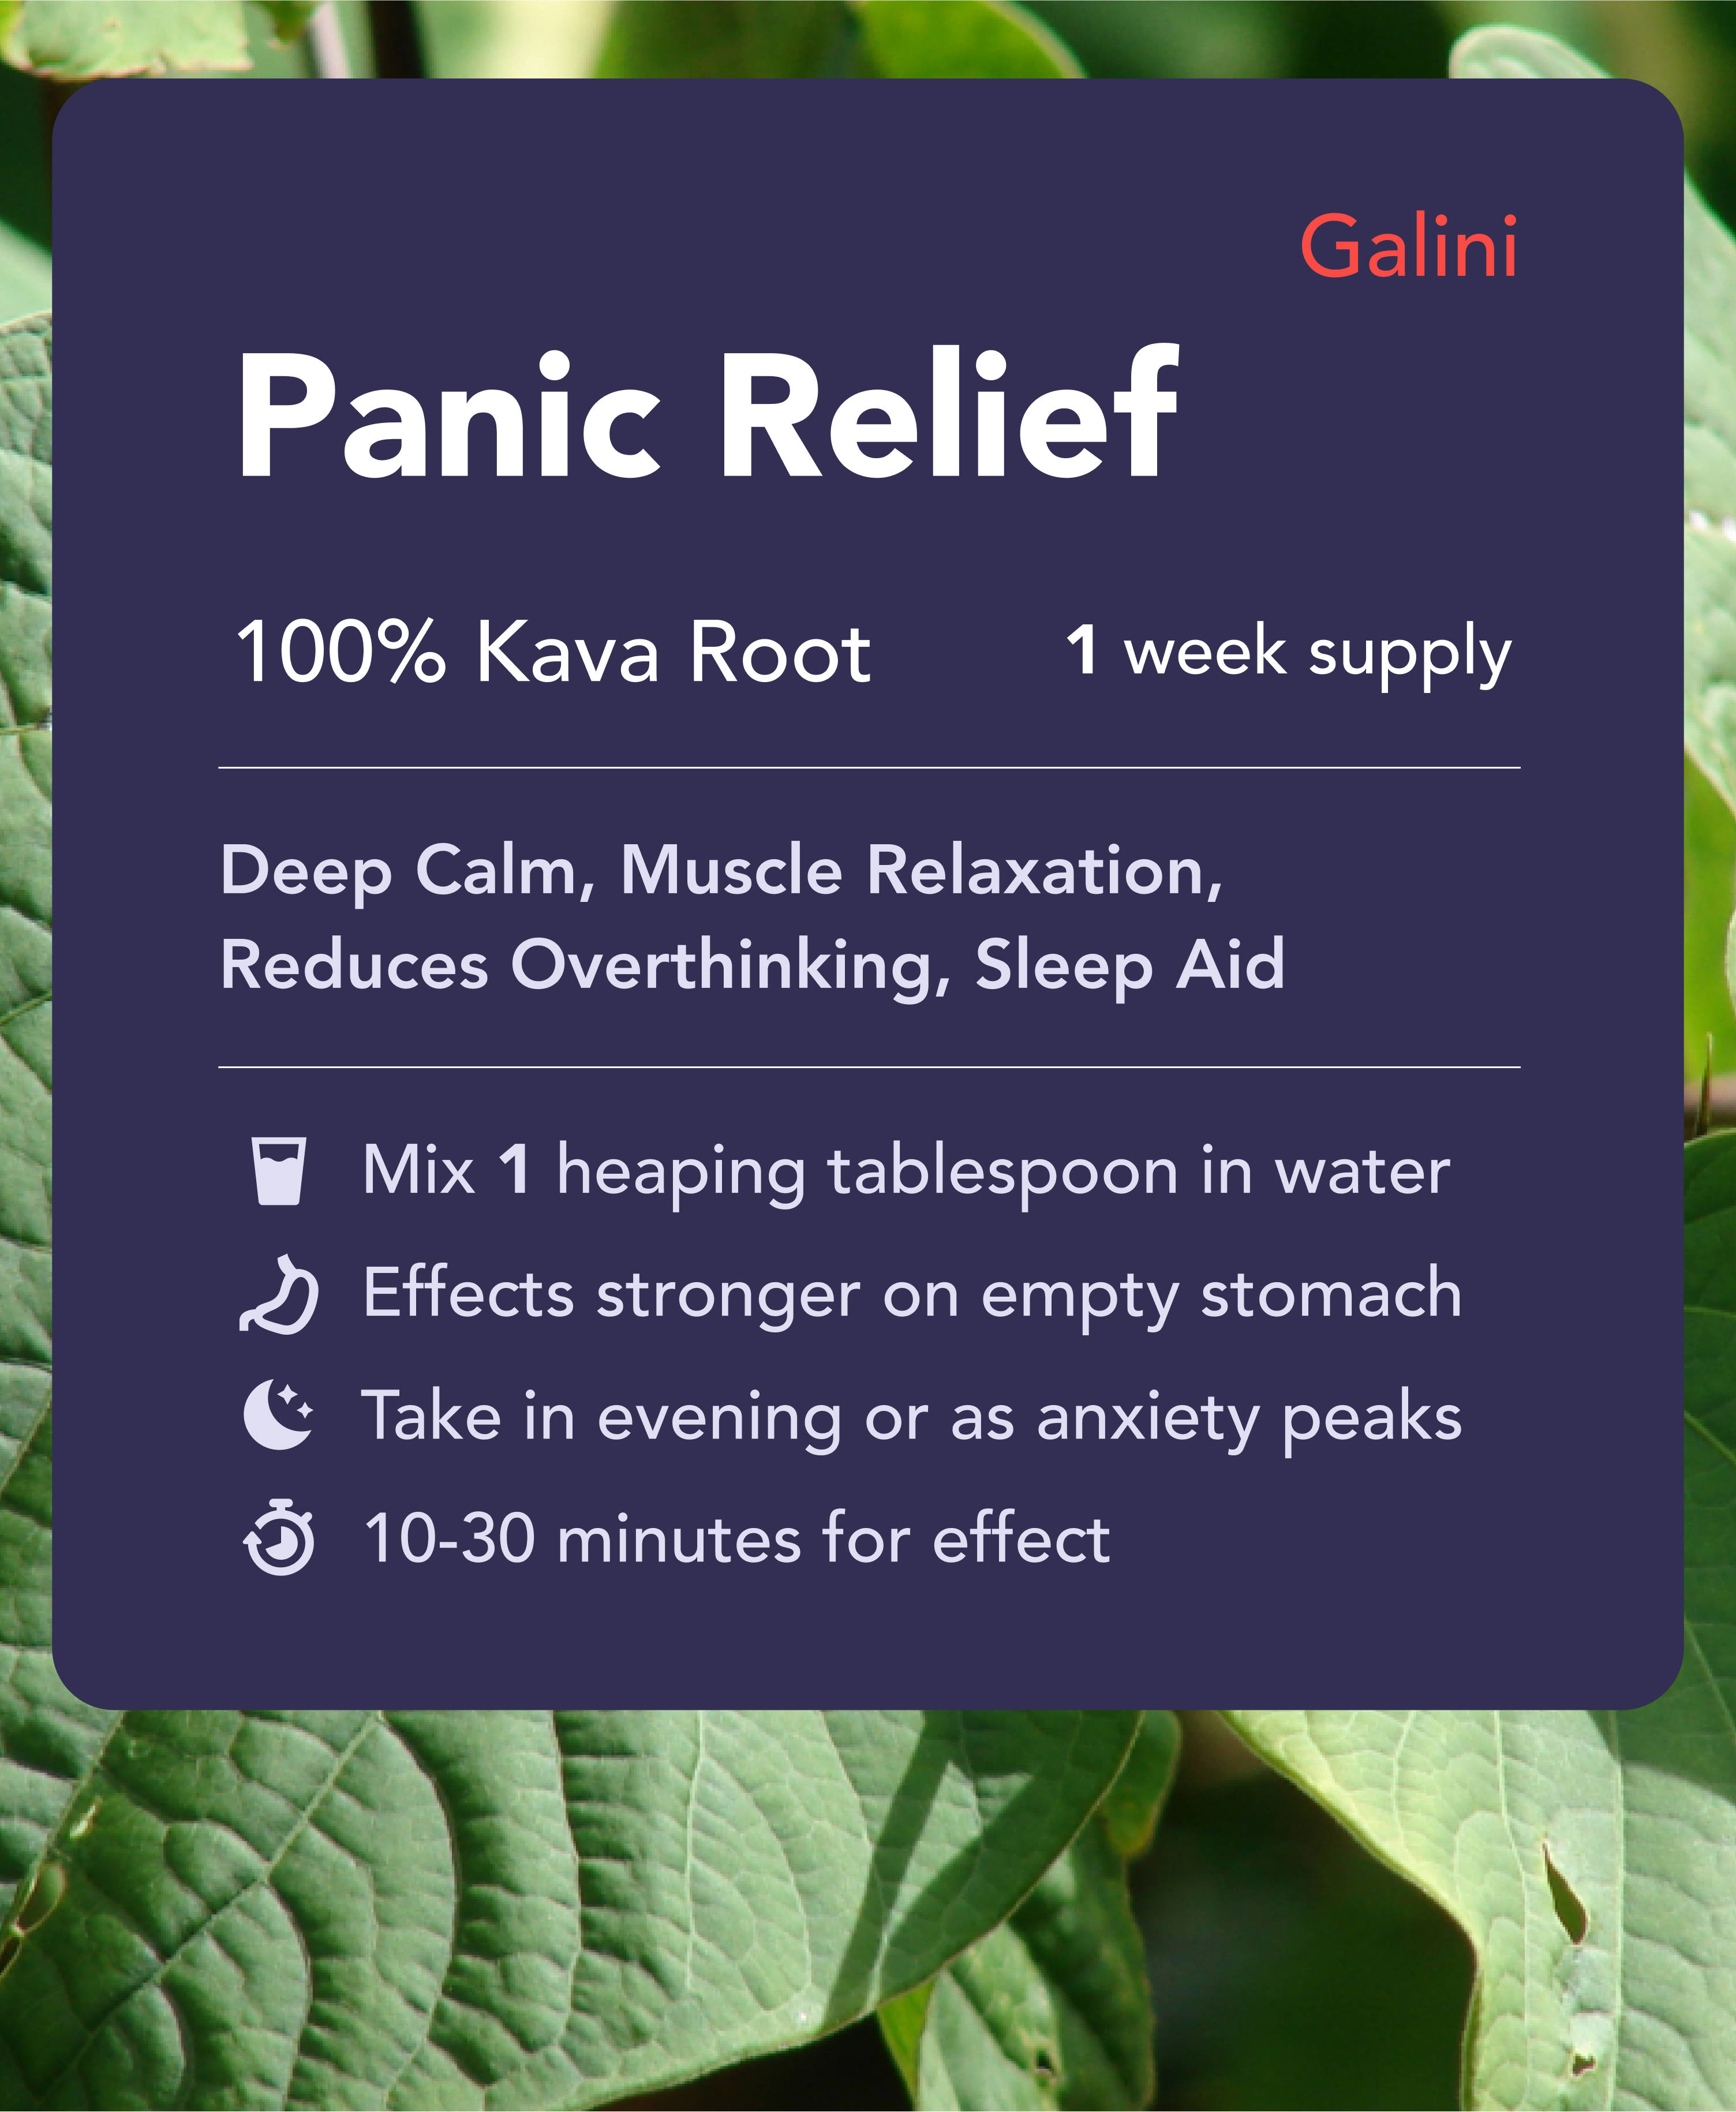 Panic Relief supplement containing Kava Kava root with nature background